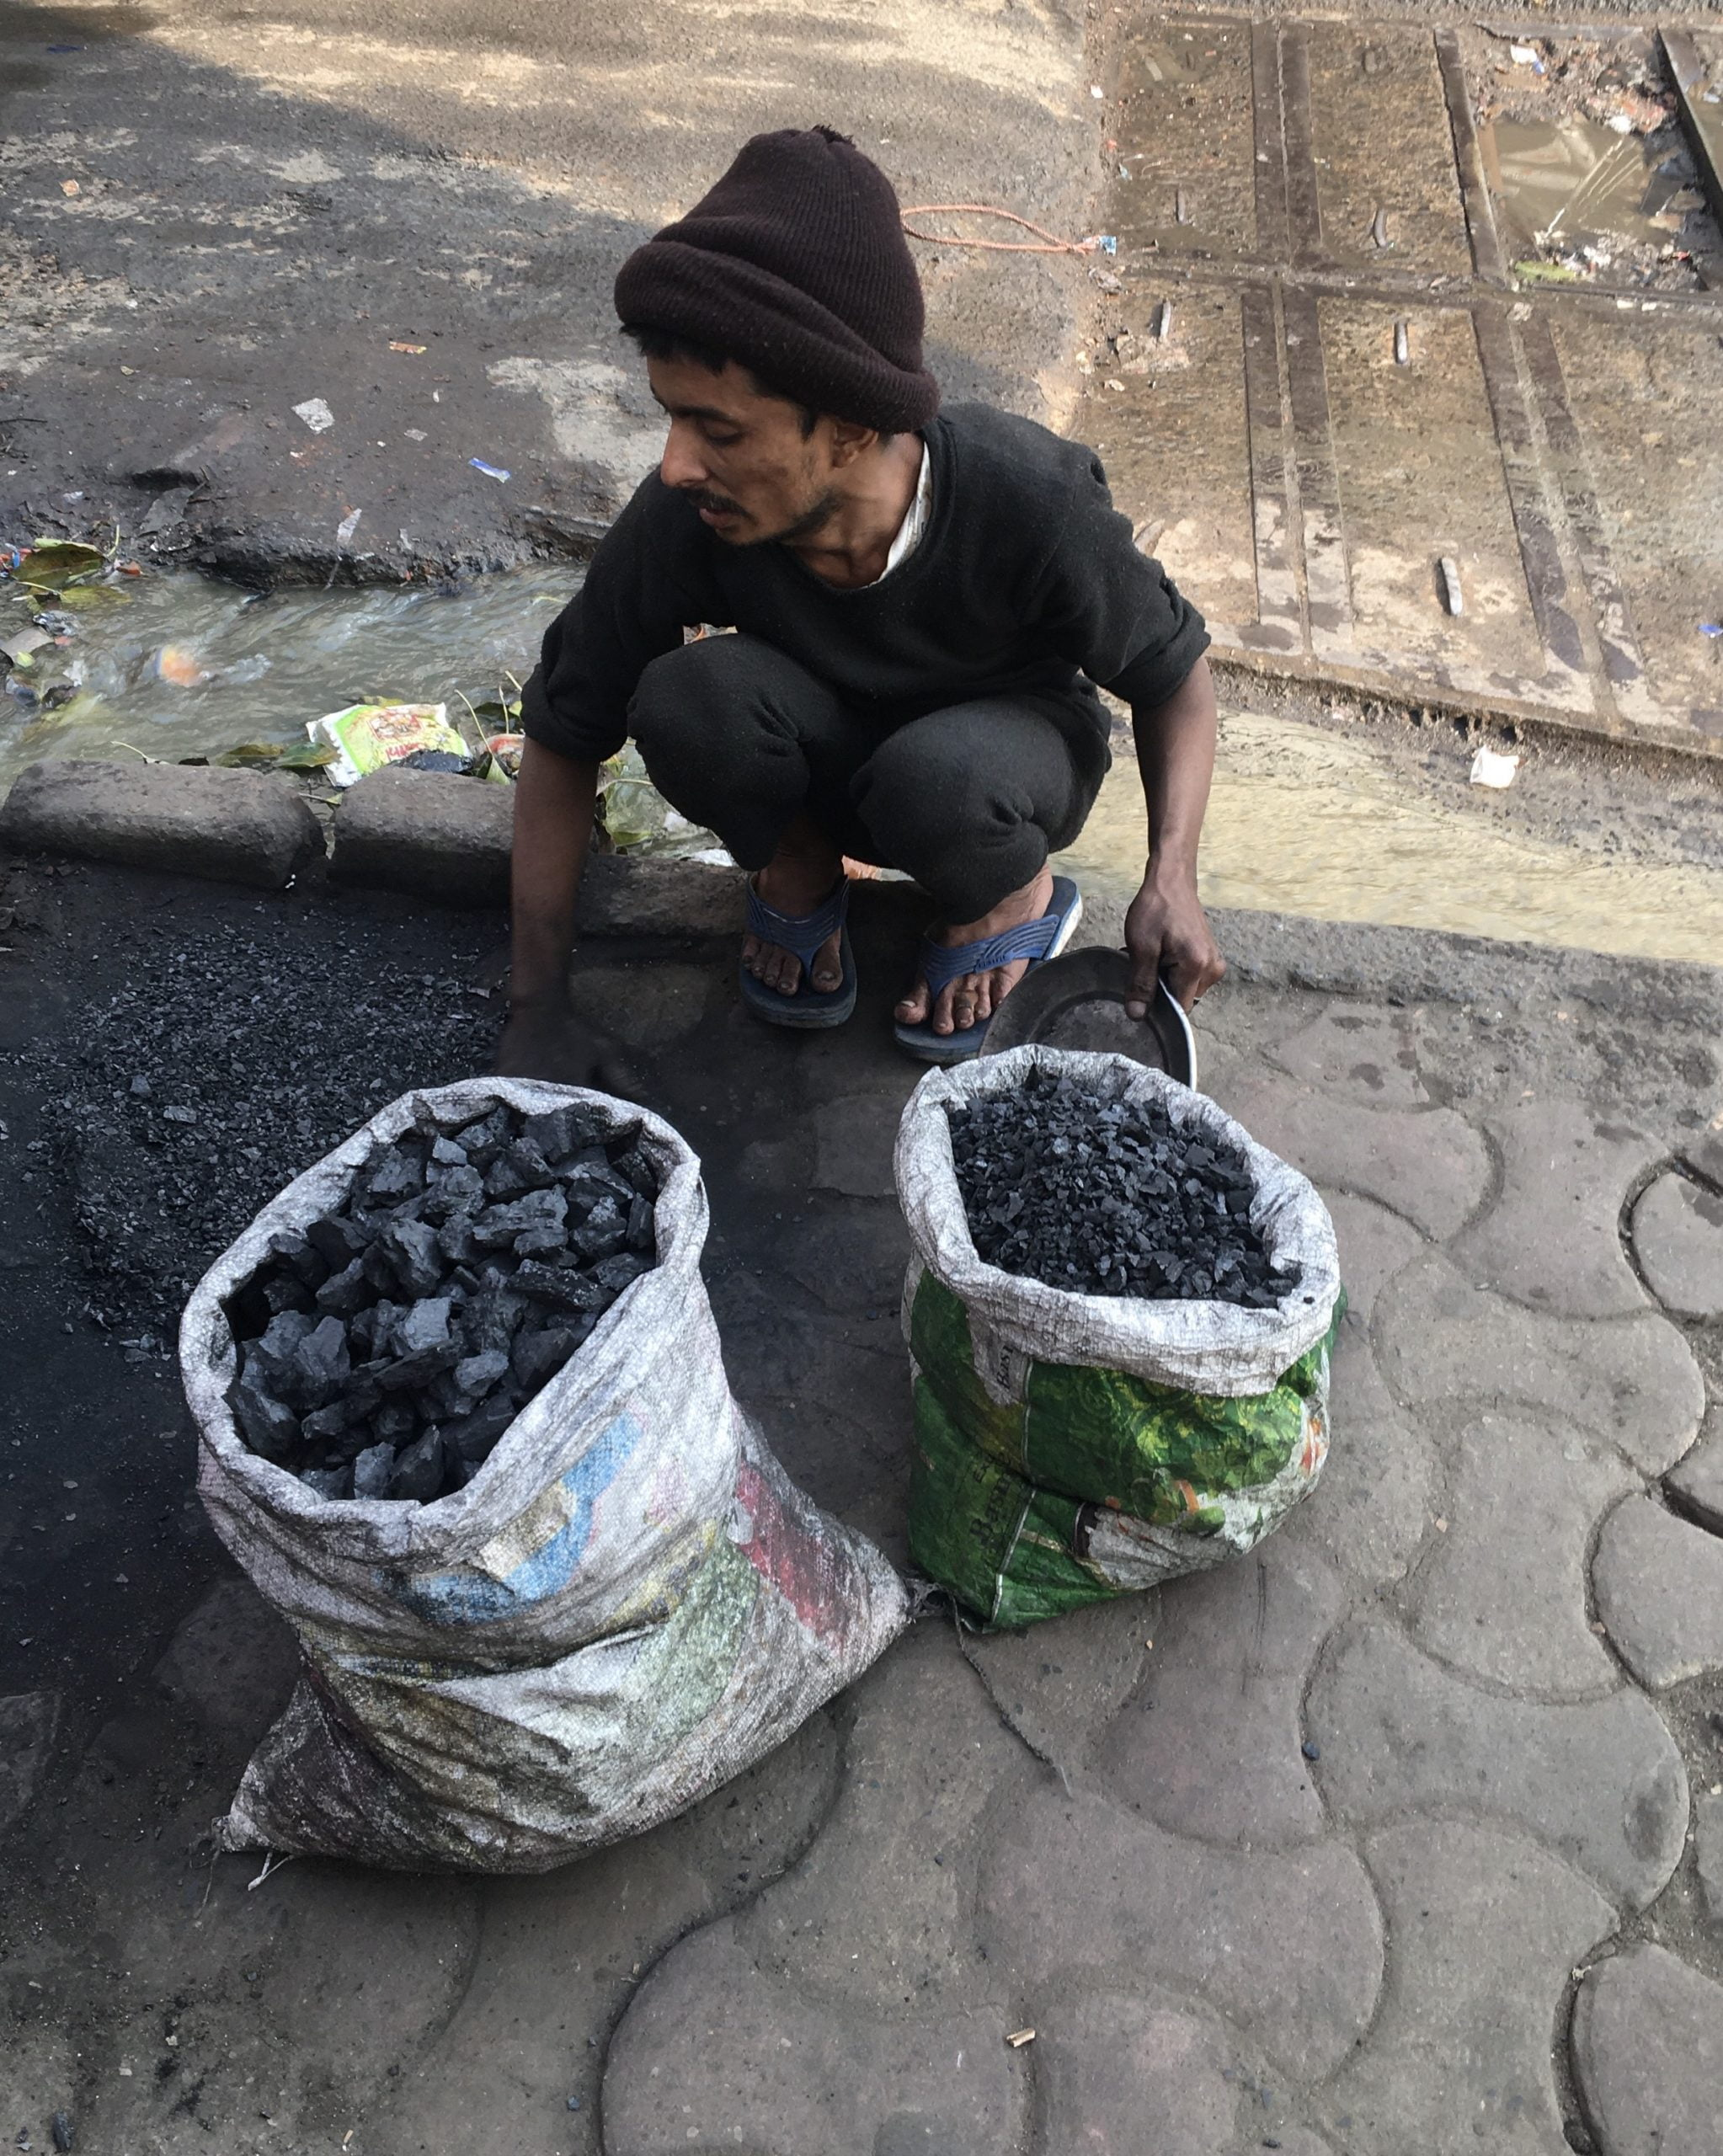 Person crouching over two white sacks filled with palm-sized pieces of black coal